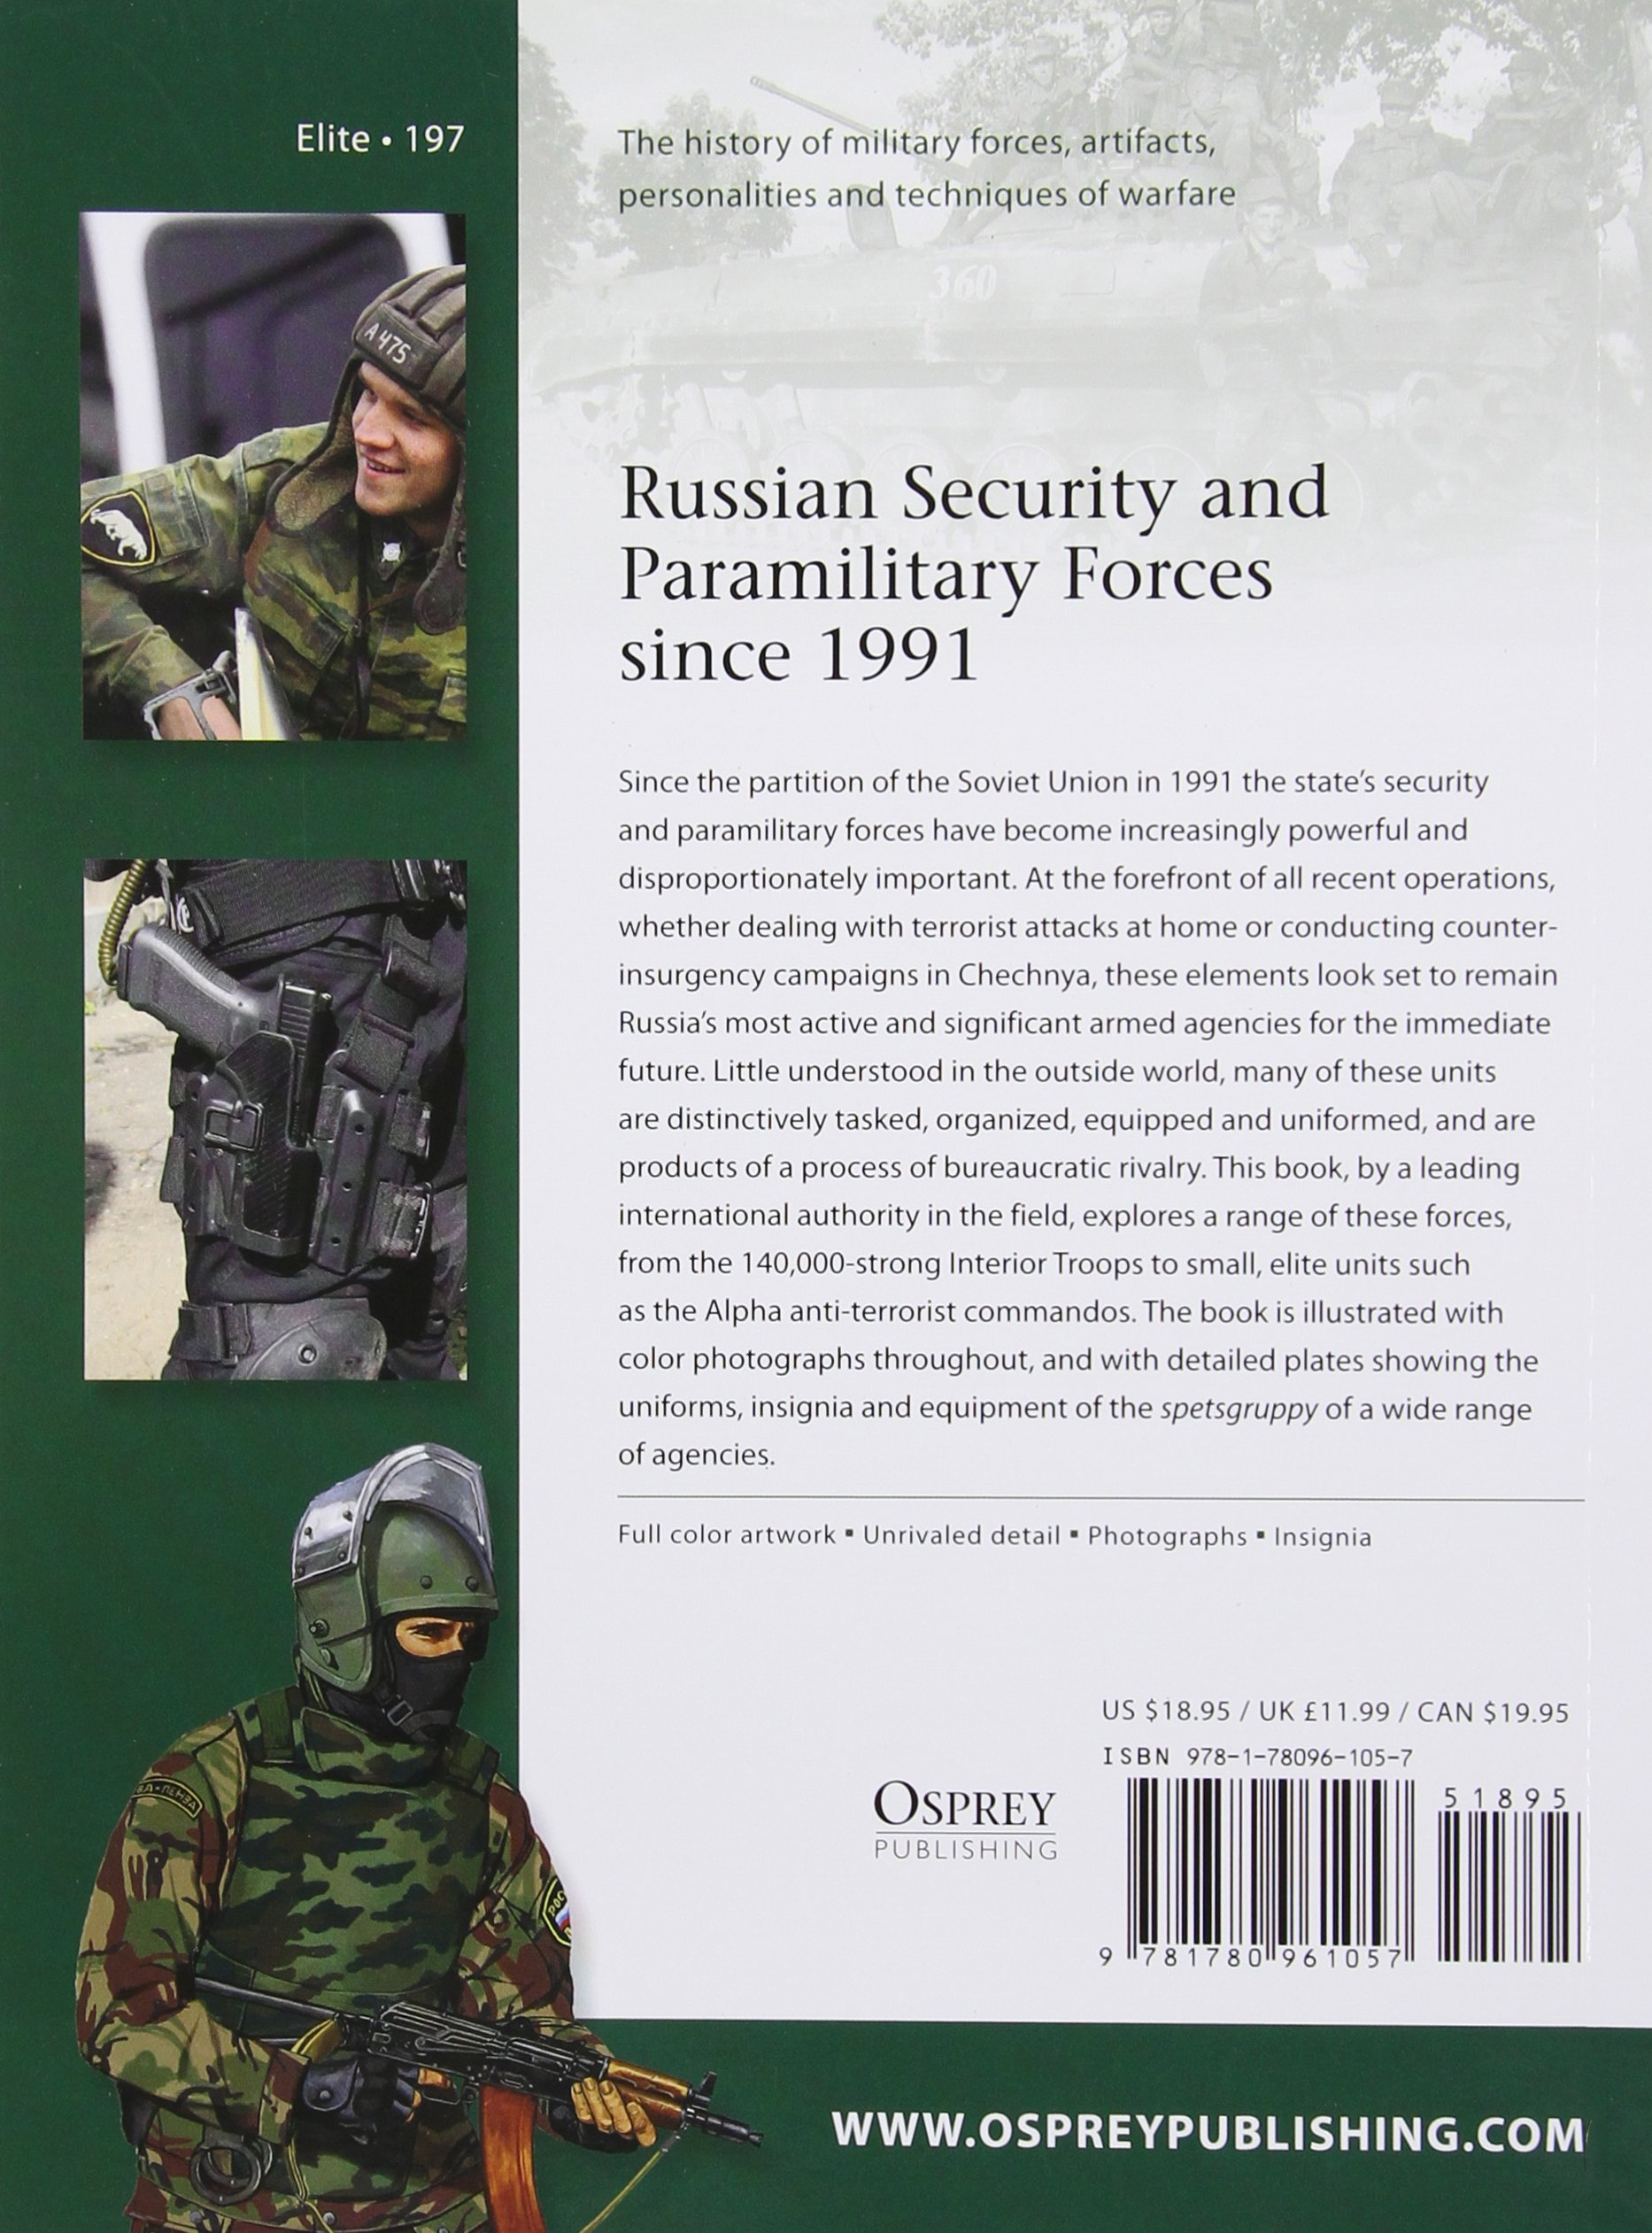 Russian Security and Paramilitary Forces since 1991 (Elite): Mark Galeotti,  Johnny Shumate: 9781780961057: Amazon.com: Books